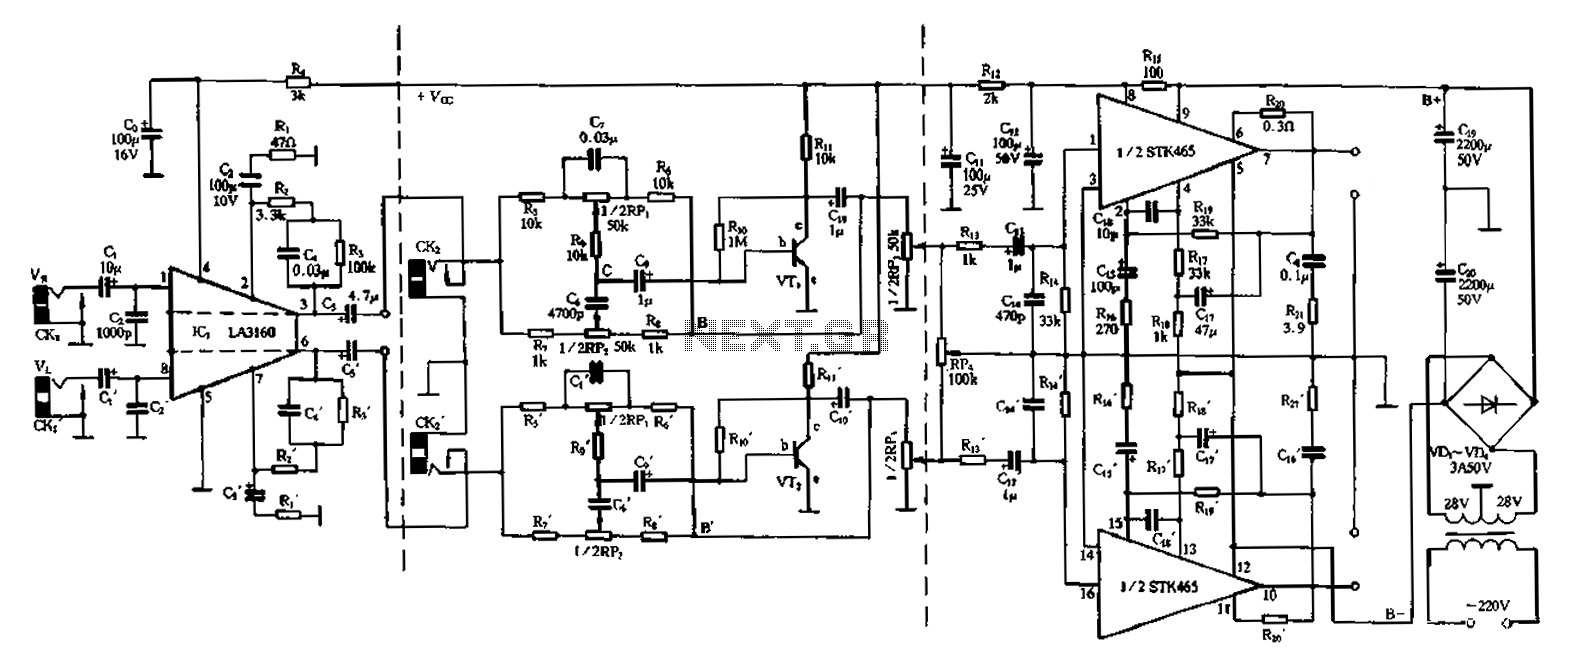 Audio Amplifier Circuit Page 3 Circuits Highfidelity And Pure Sine Wave Inverter 1 Based On Class D 50wx2